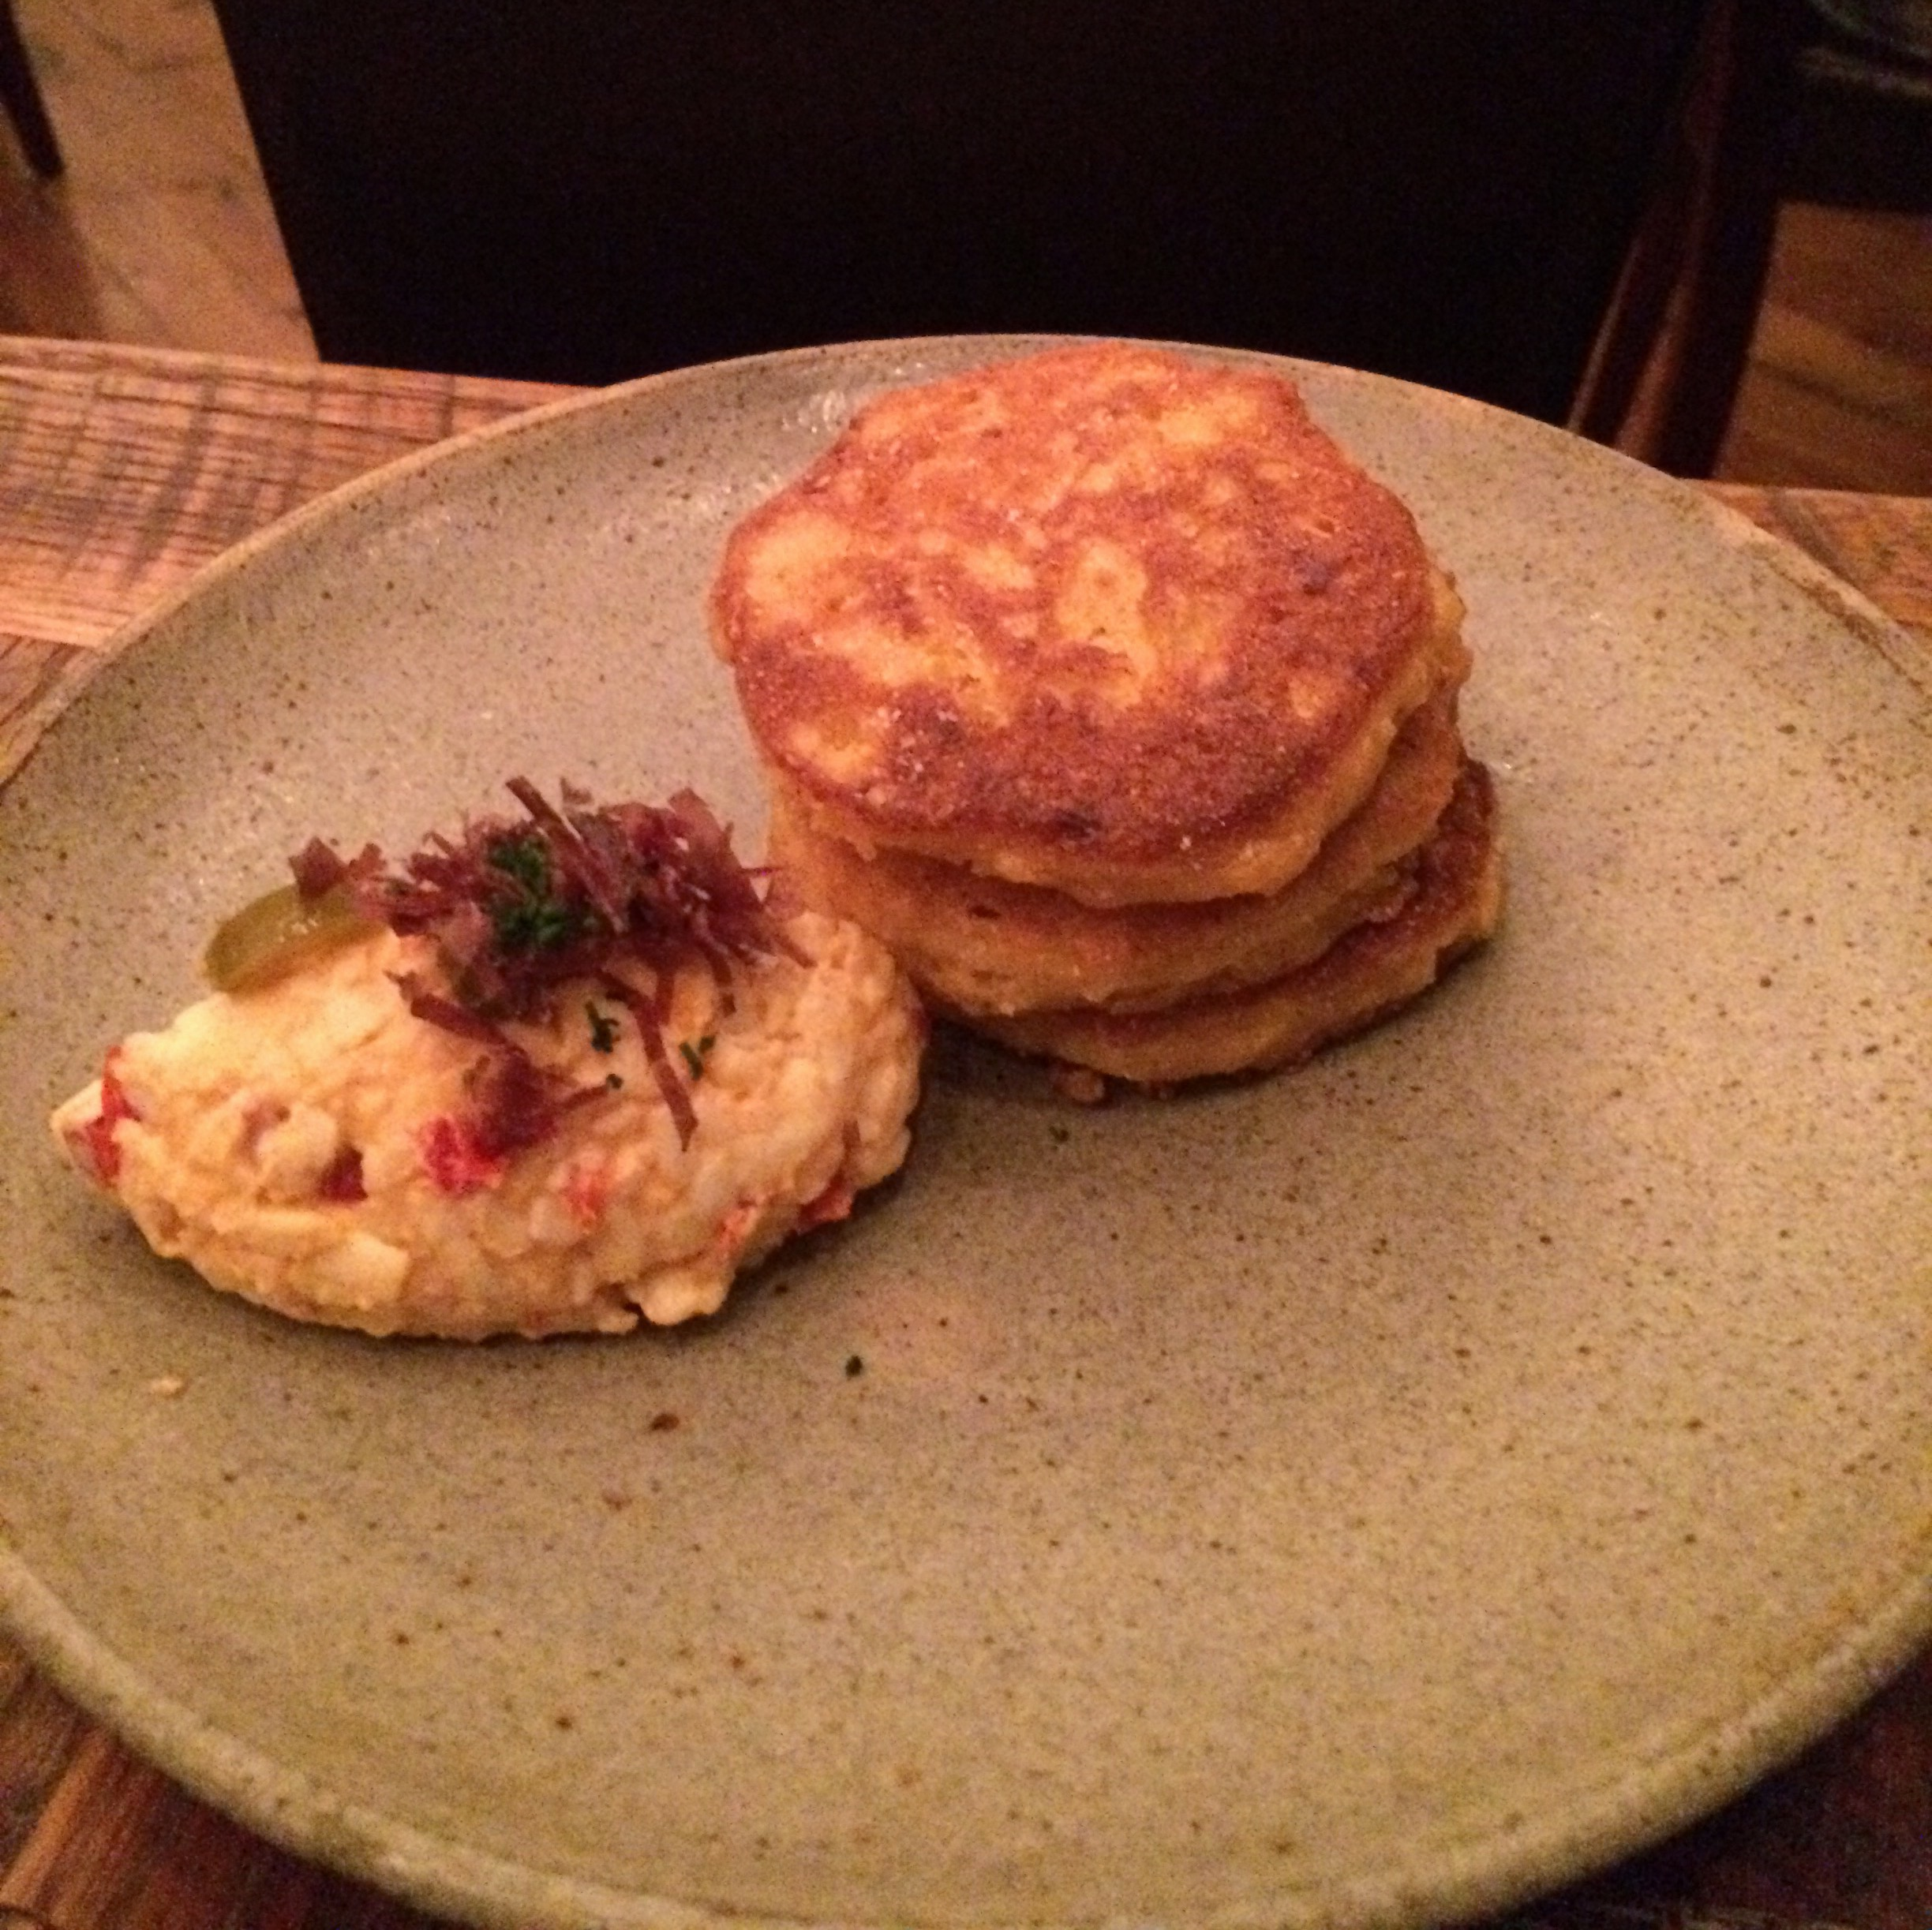 Pimento cheese & johnny cakes